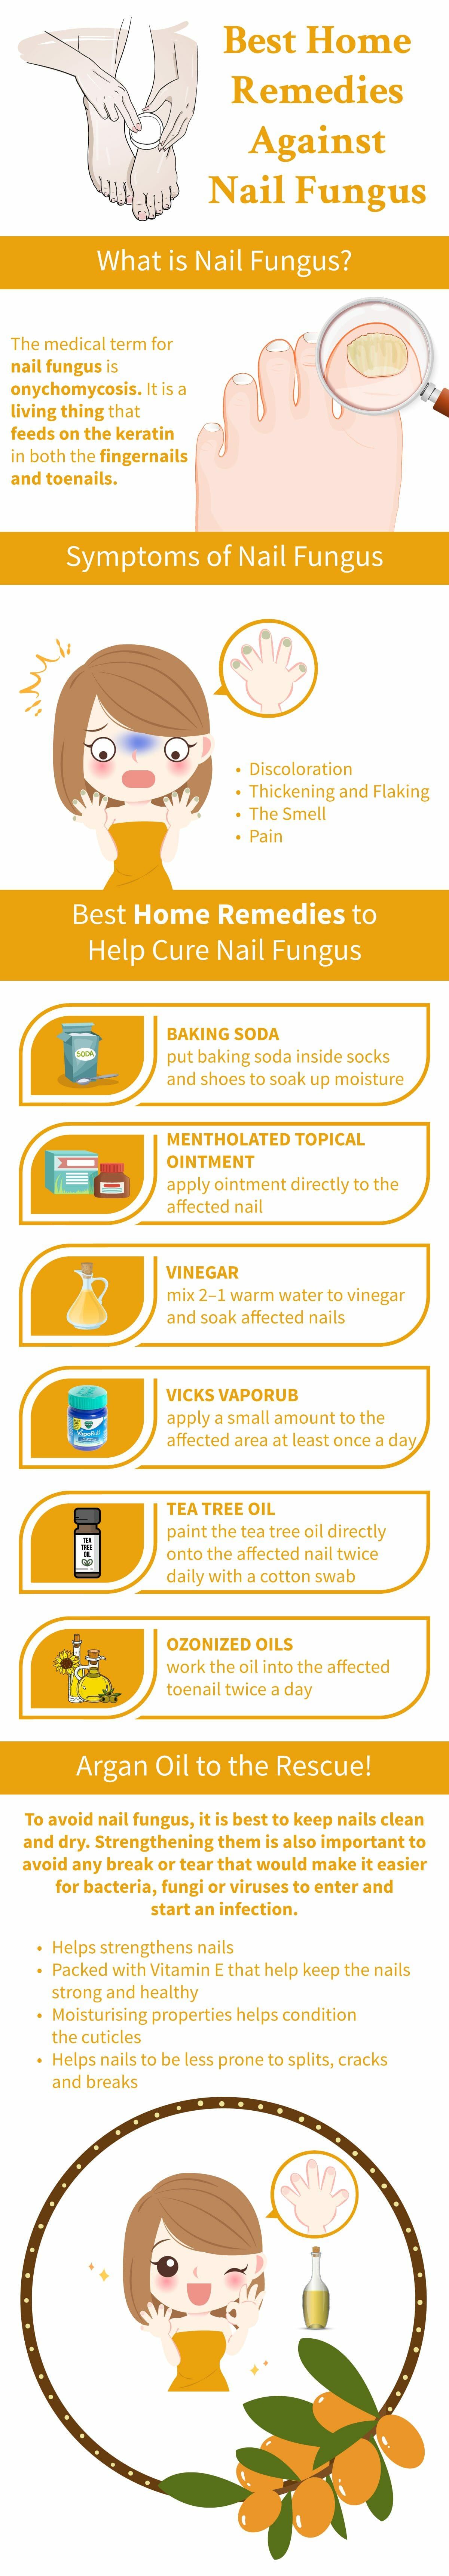 nail fungus infographic